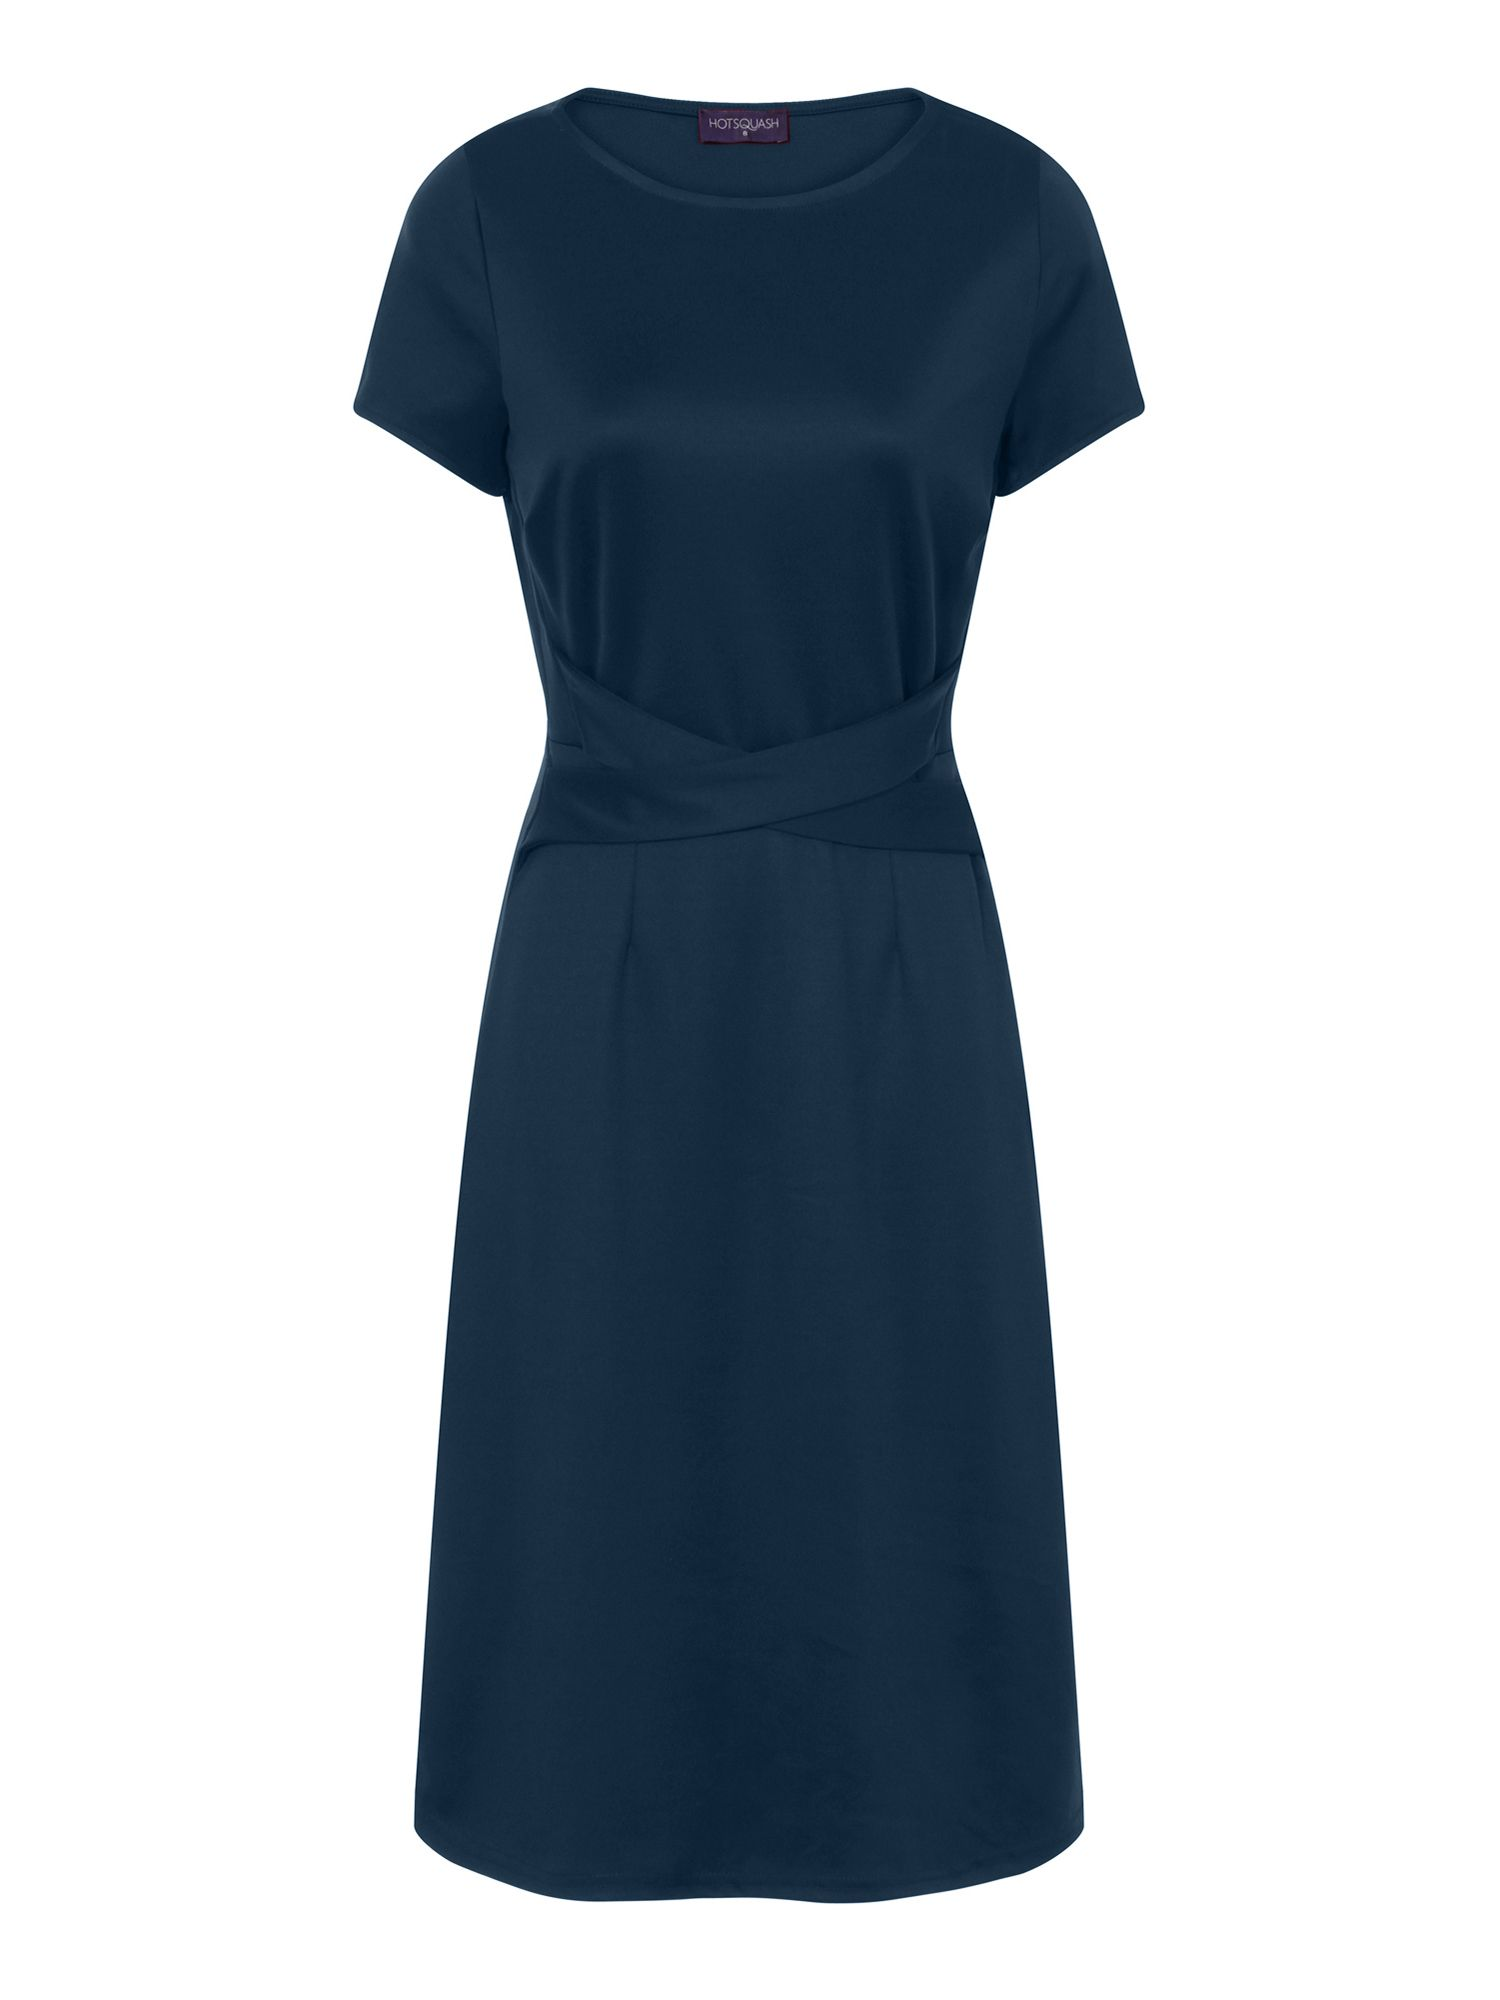 HotSquash Midi Office Ponte Dress in Clever Fabric, Teal